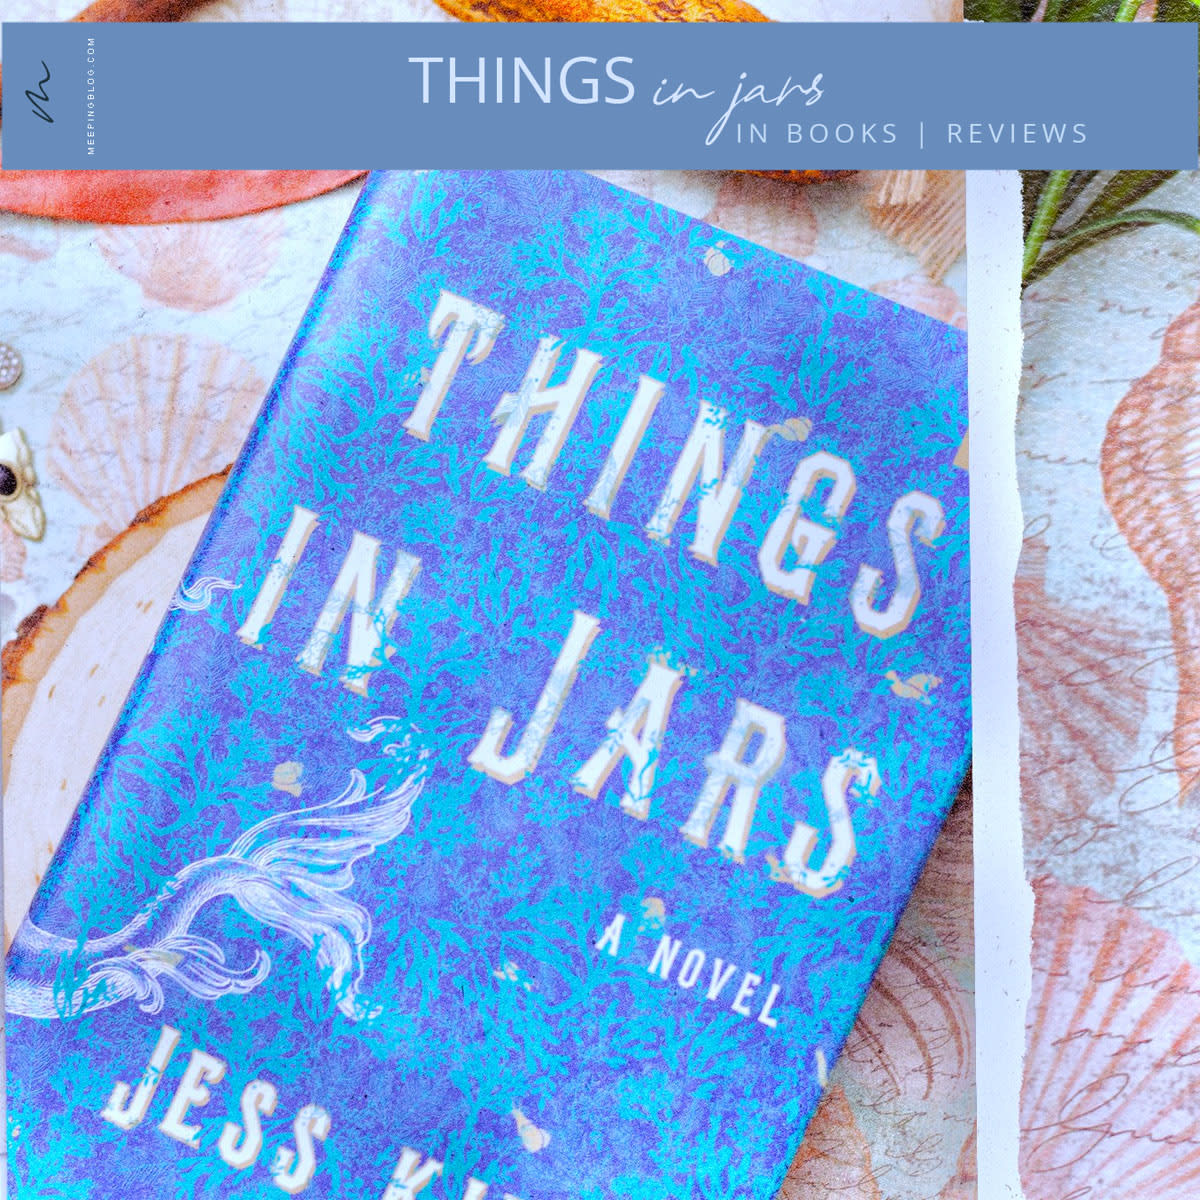 Things In Jars Book Review V3